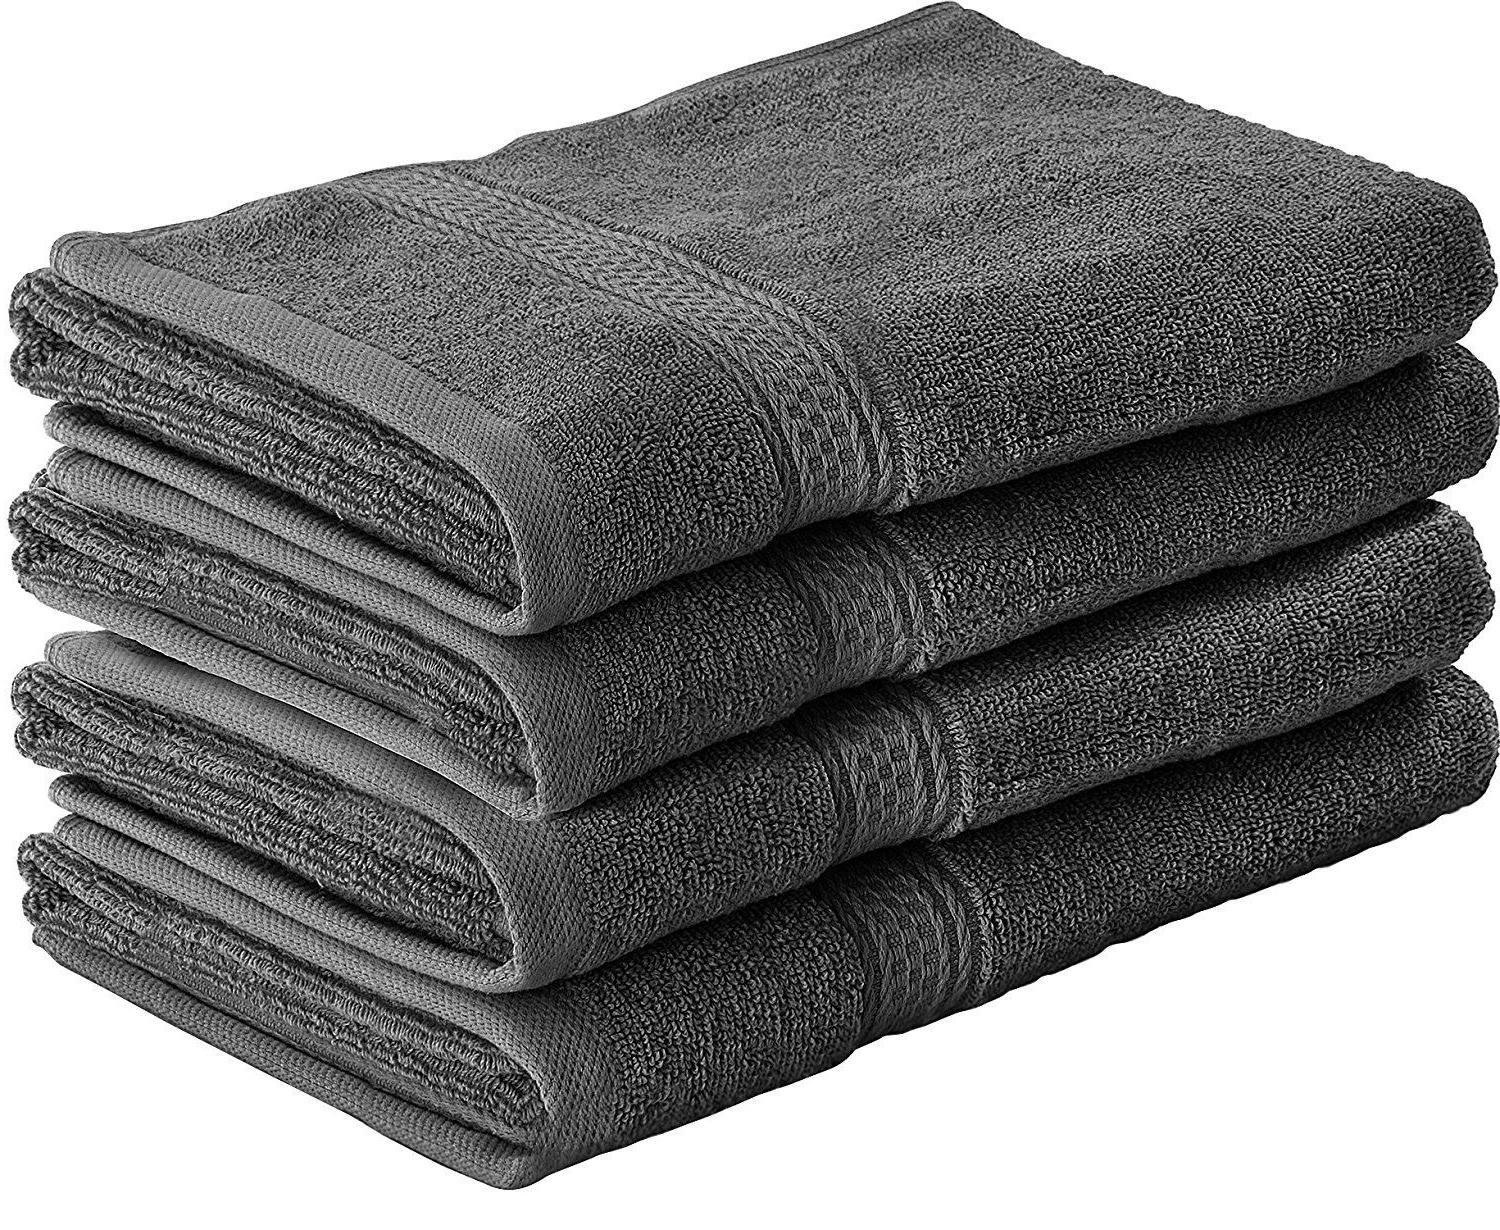 4 16 x Inches Cotton Lot Towels